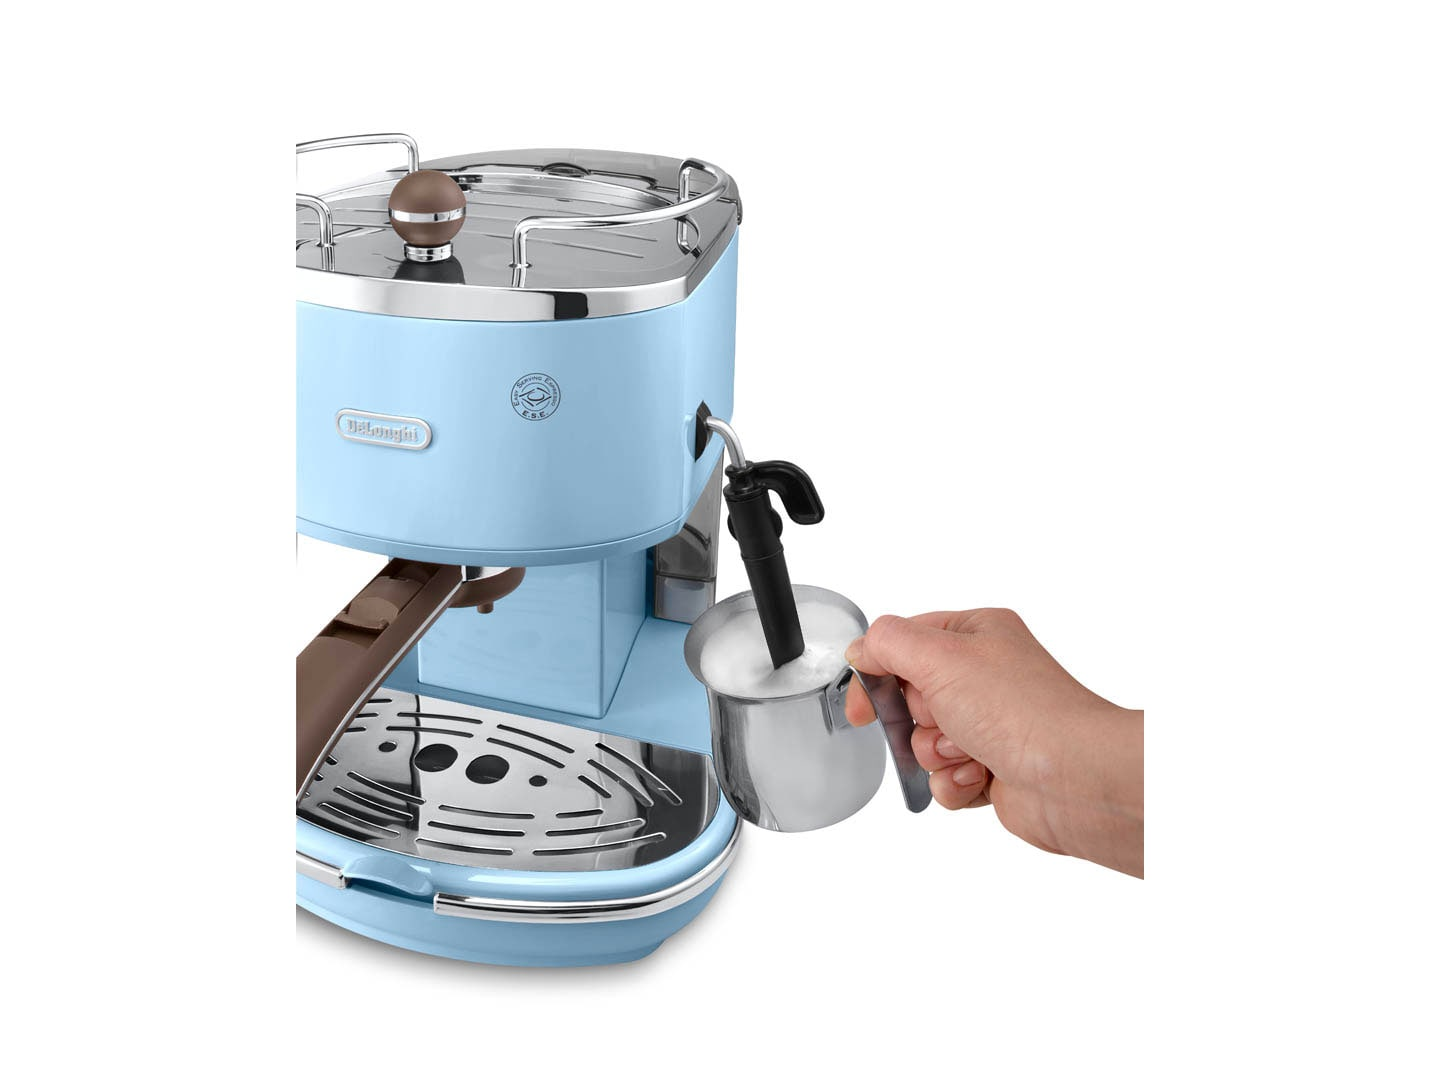 How To Use Vintage Coffee Maker : Delonghi ECOV311 Icona Vintage Coffee Maker (blue) Lazada Singapore